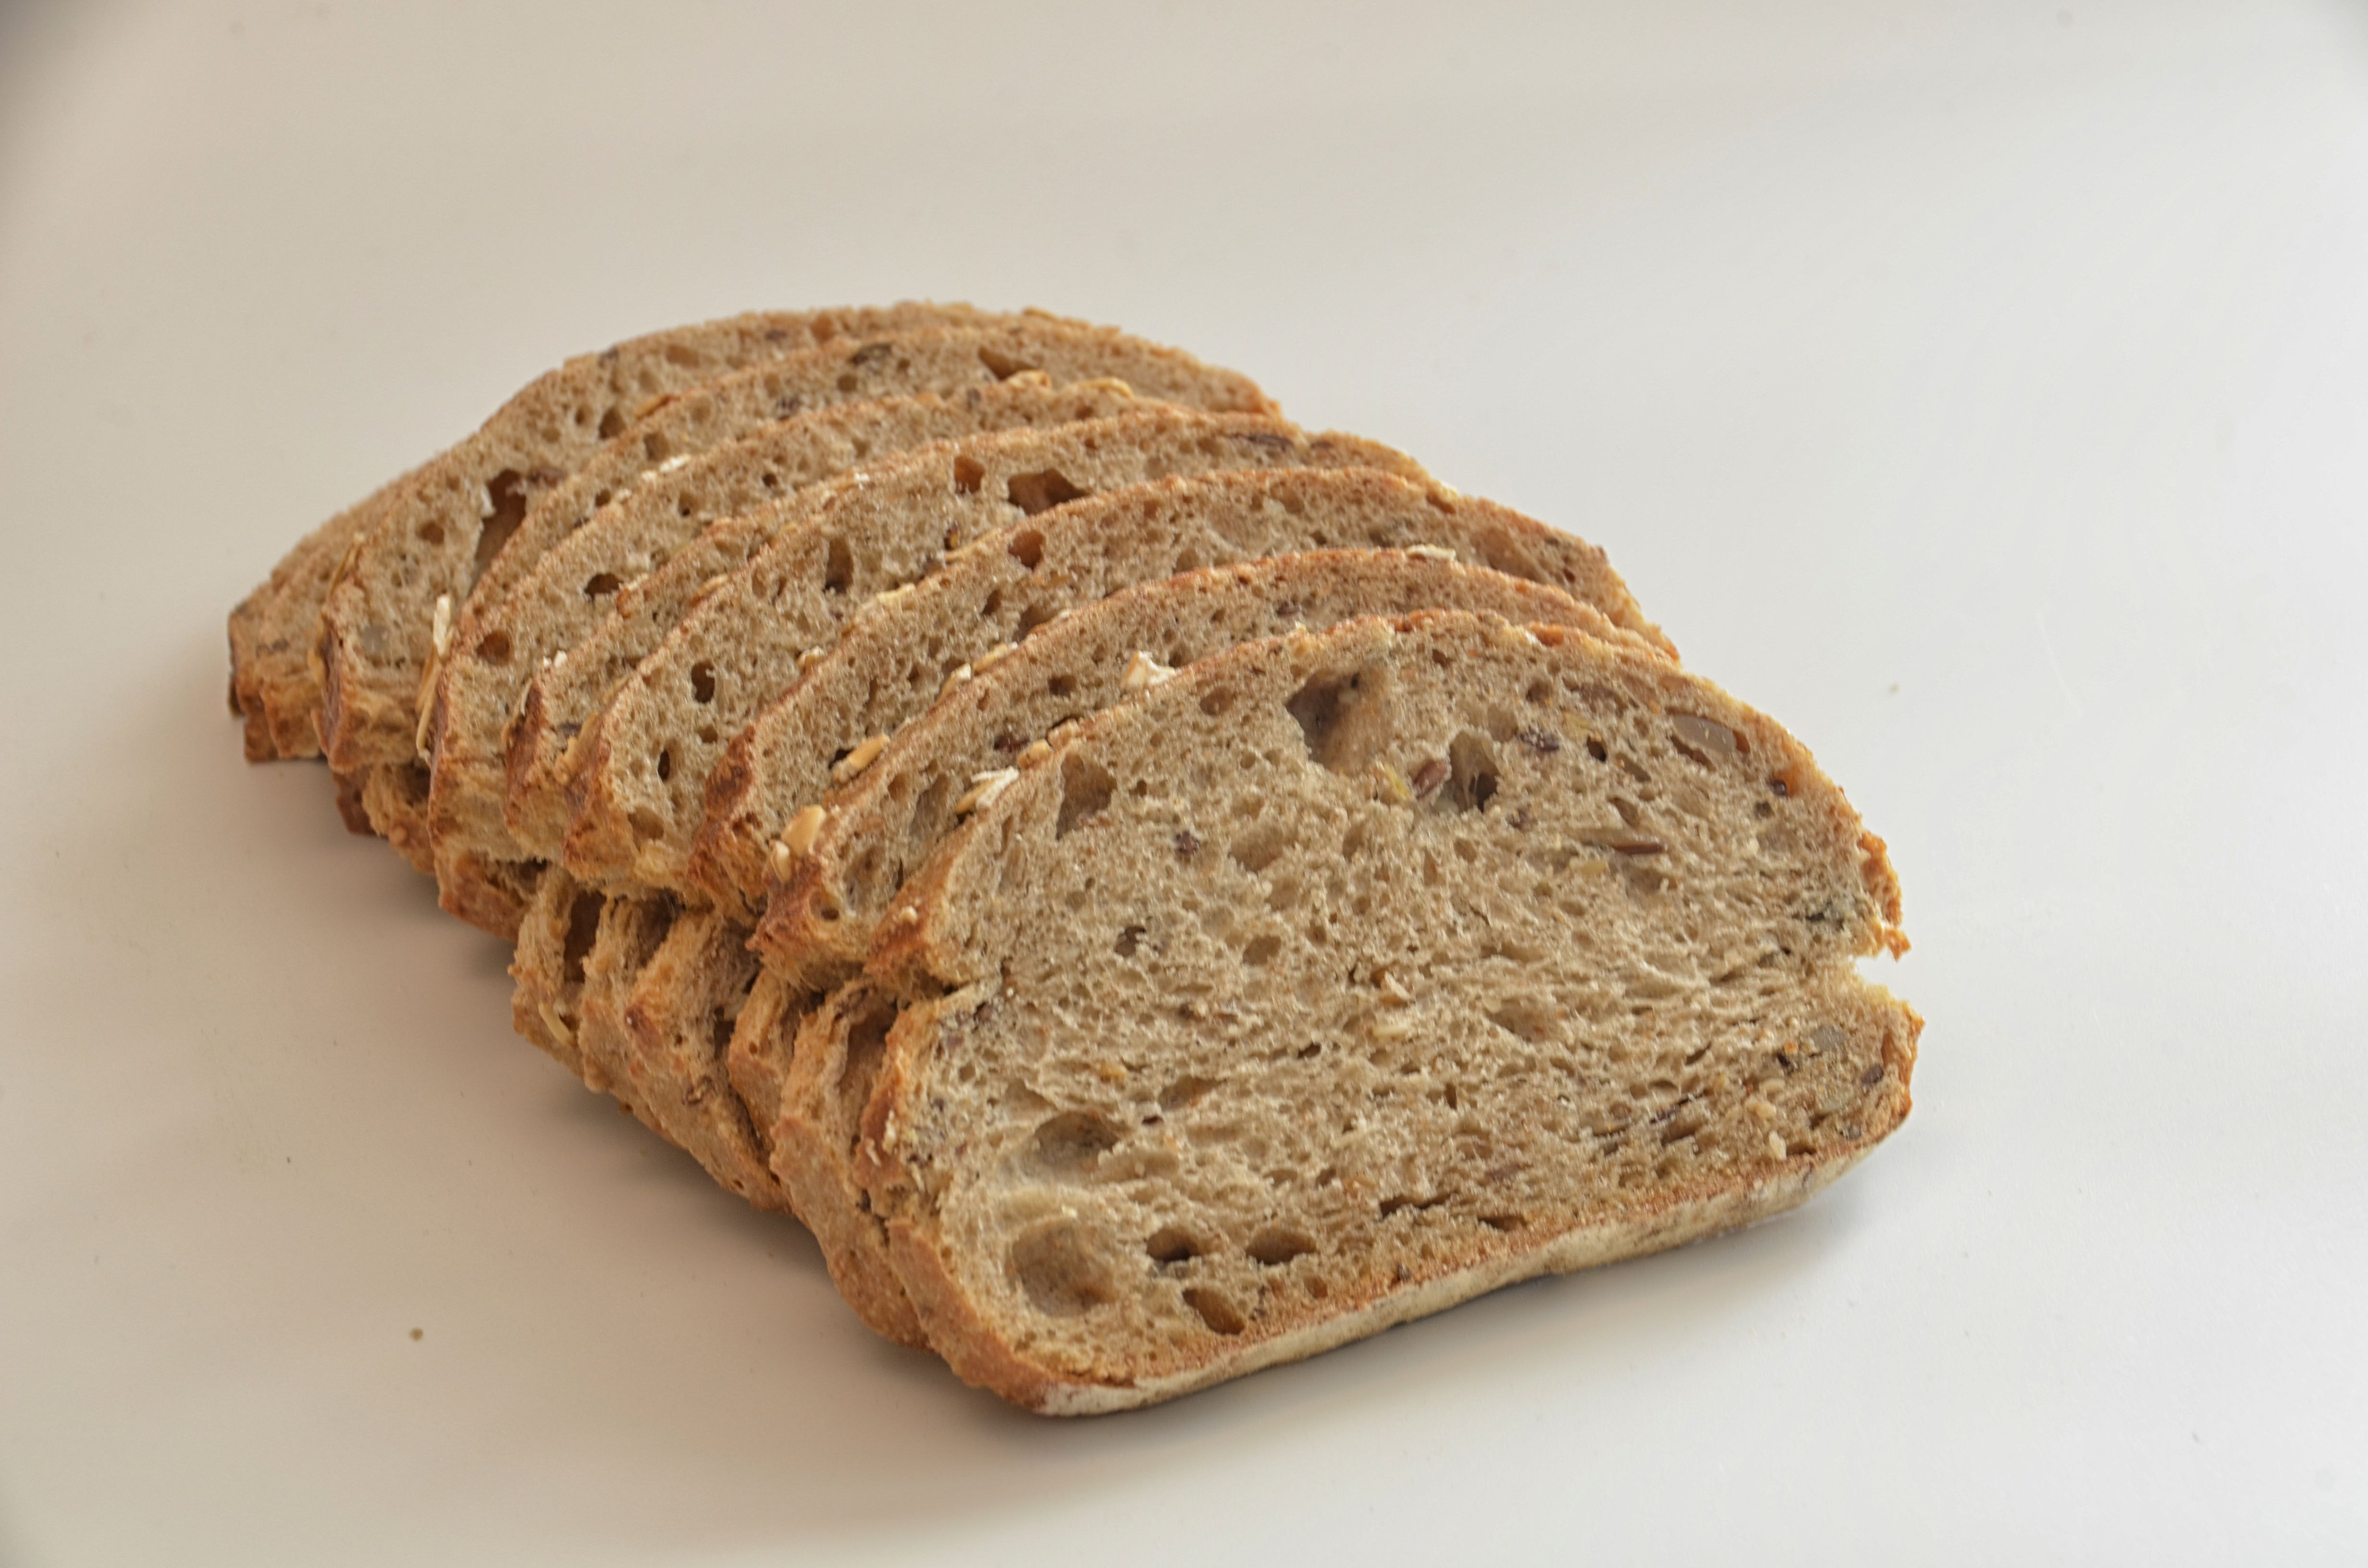 Several Brown Breads 183 Free Stock Photo